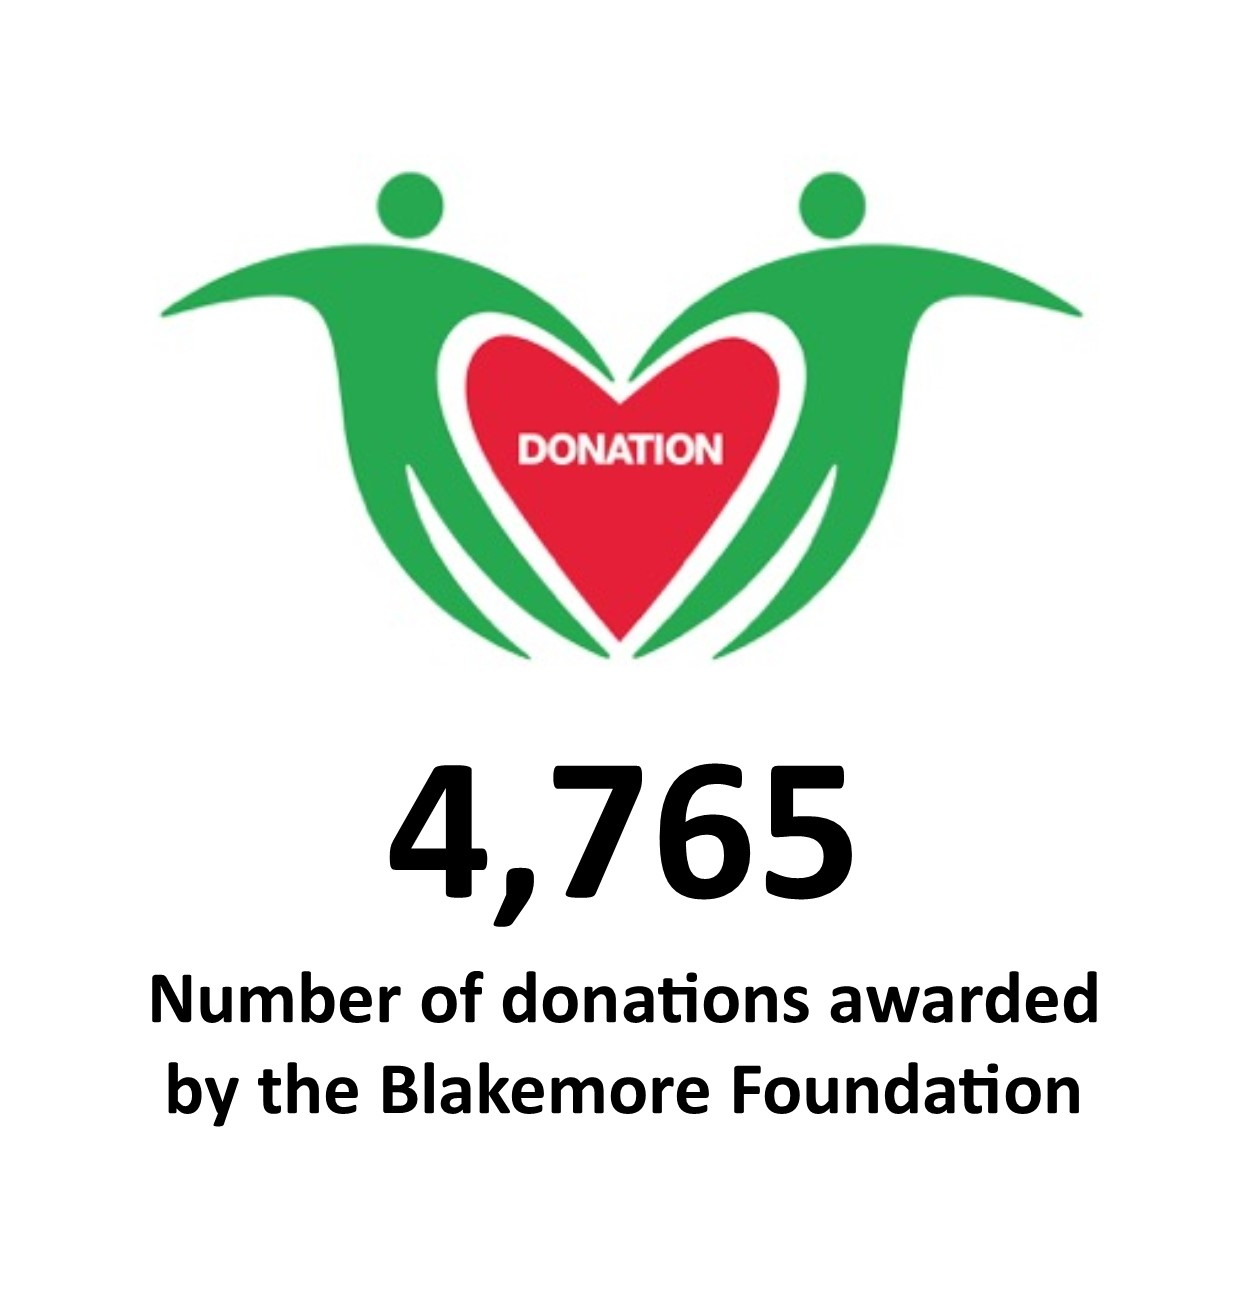 Number_of_donations_awarded_by_the_Blakemore_Foundation